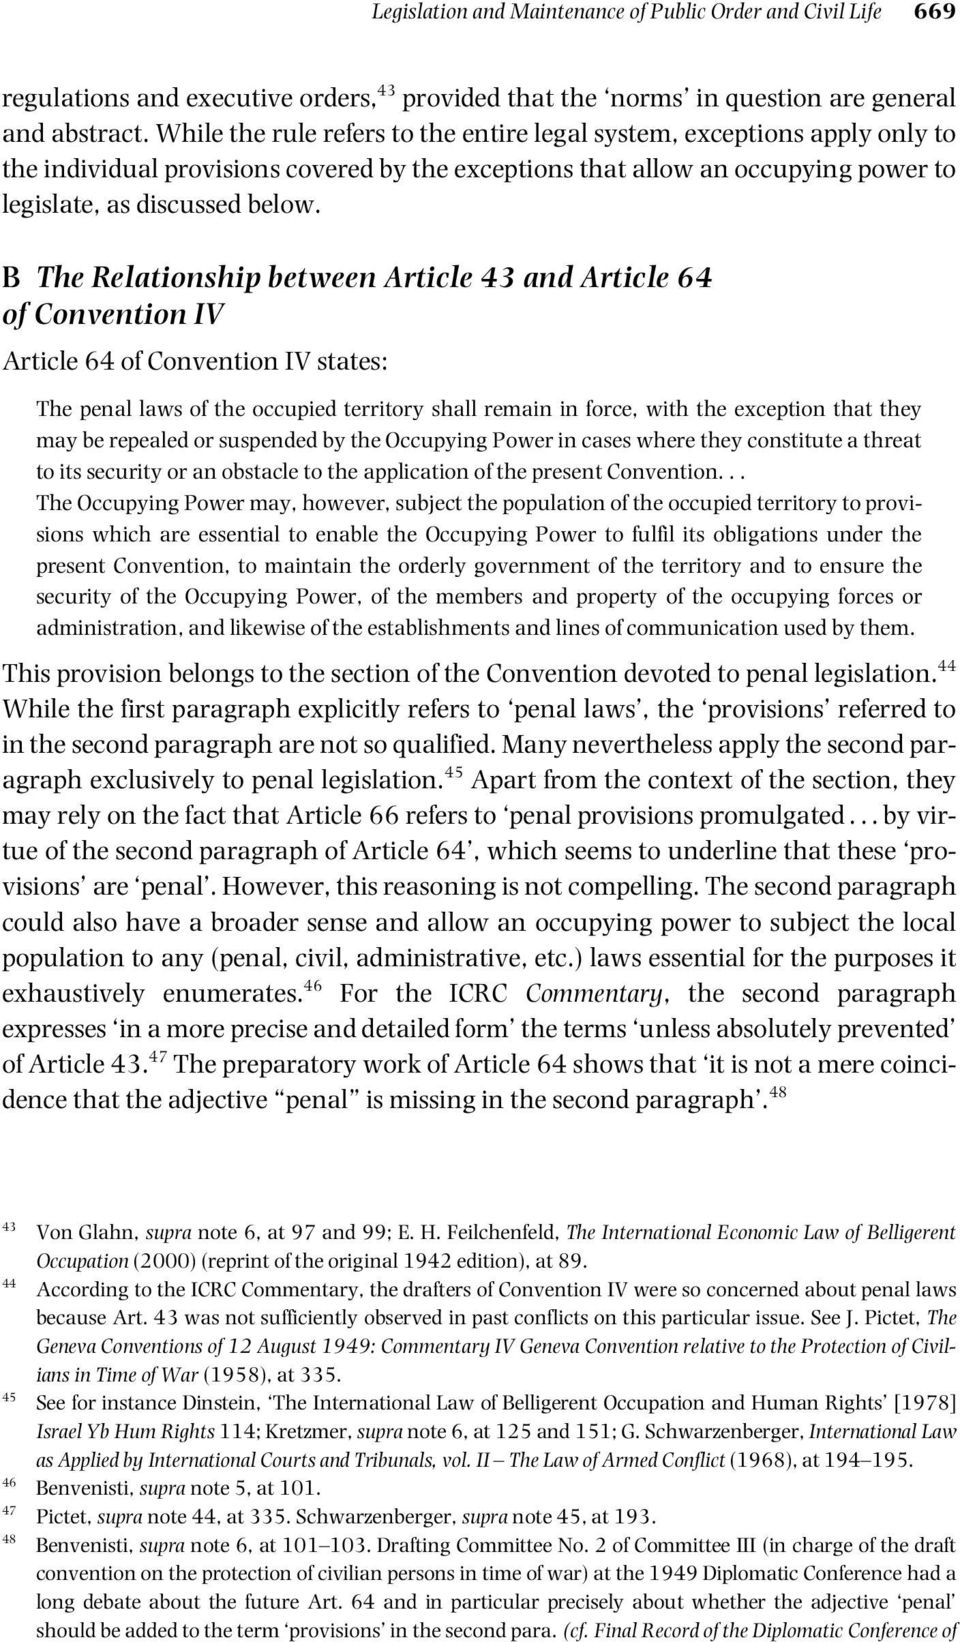 B The Relationship between Article 43 and Article 64 of Convention IV Article 64 of Convention IV states: The penal laws of the occupied territory shall remain in force, with the exception that they